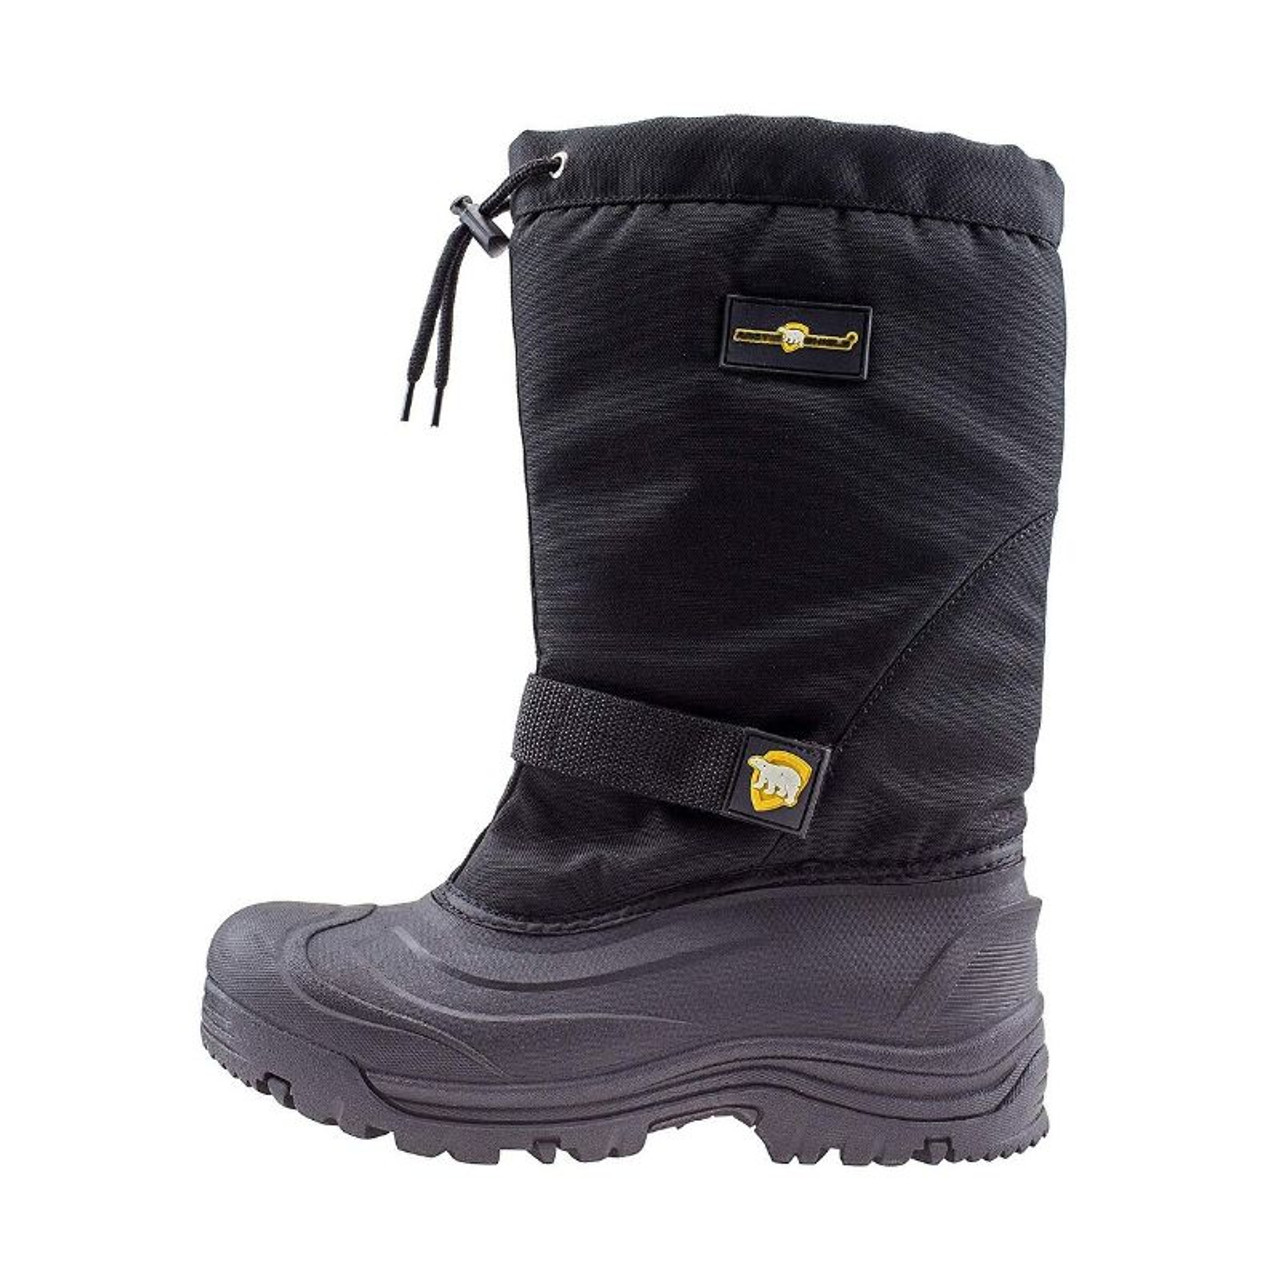 ArcticShield Mens Waterproof Durable Insulated Tall Winter Snow Boots